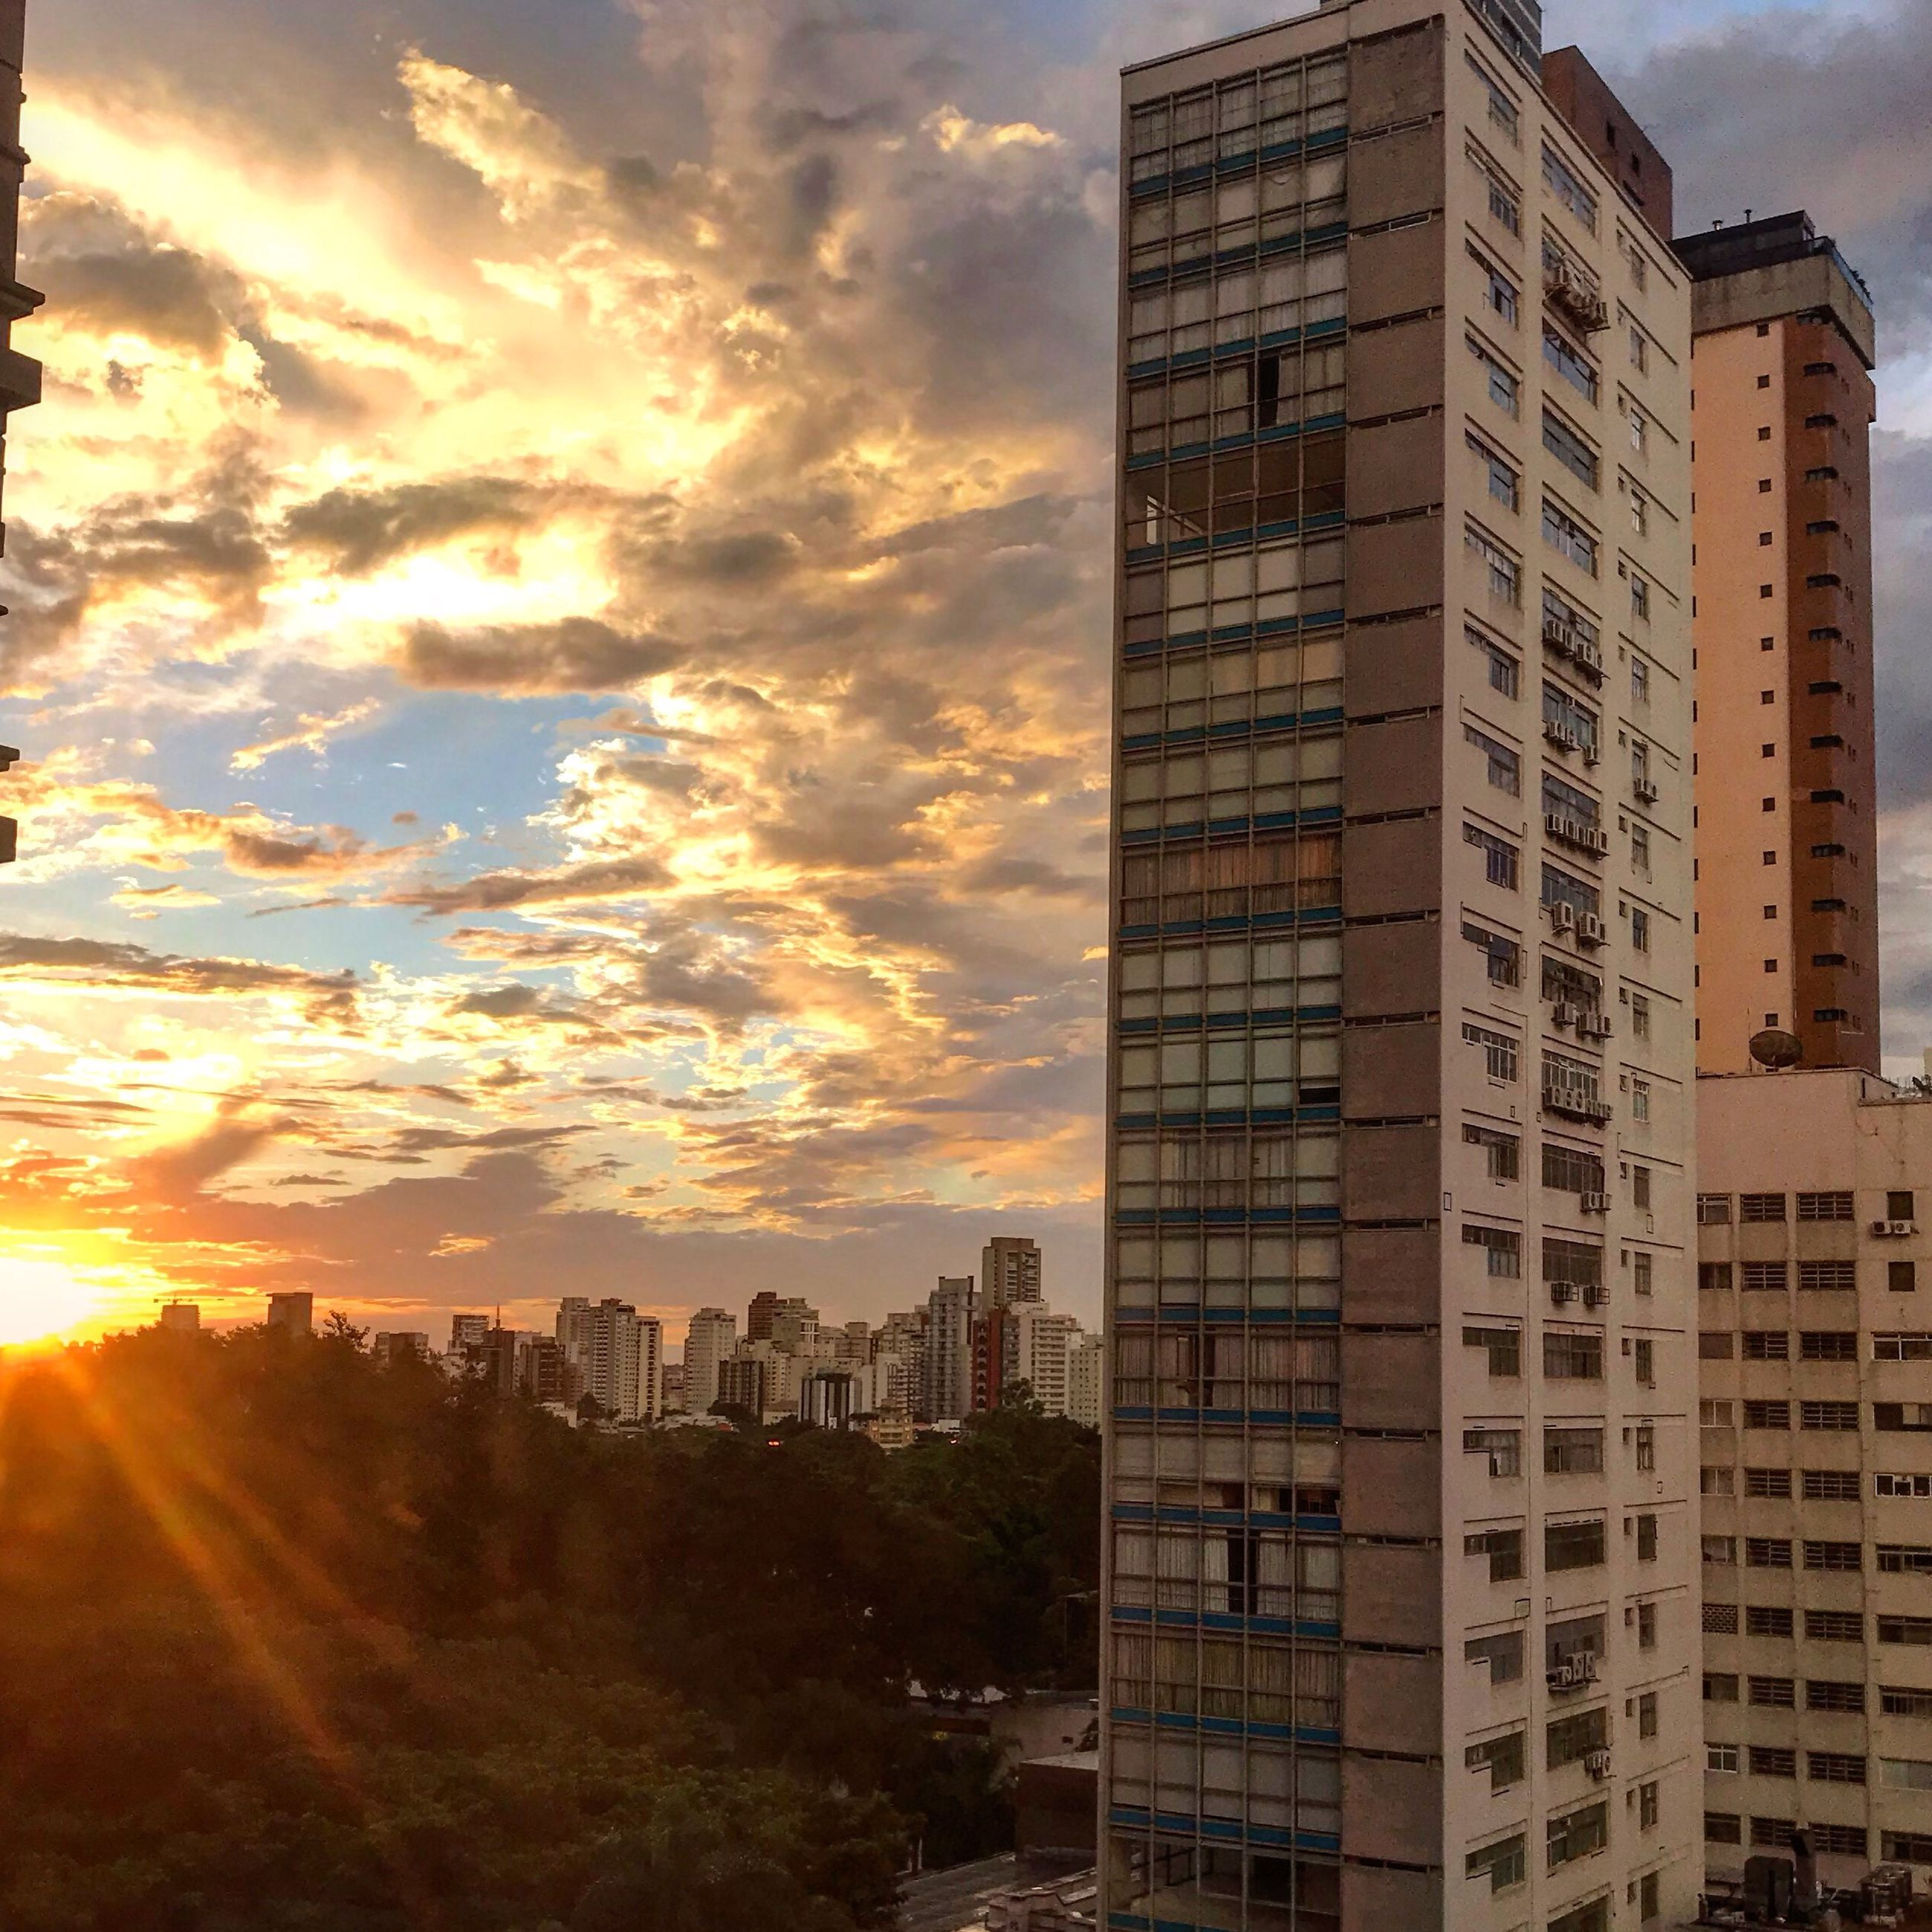 building exterior, architecture, built structure, city, building, sky, cloud - sky, sunset, office building exterior, nature, residential district, no people, cityscape, modern, tall - high, skyscraper, sunlight, office, outdoors, orange color, apartment